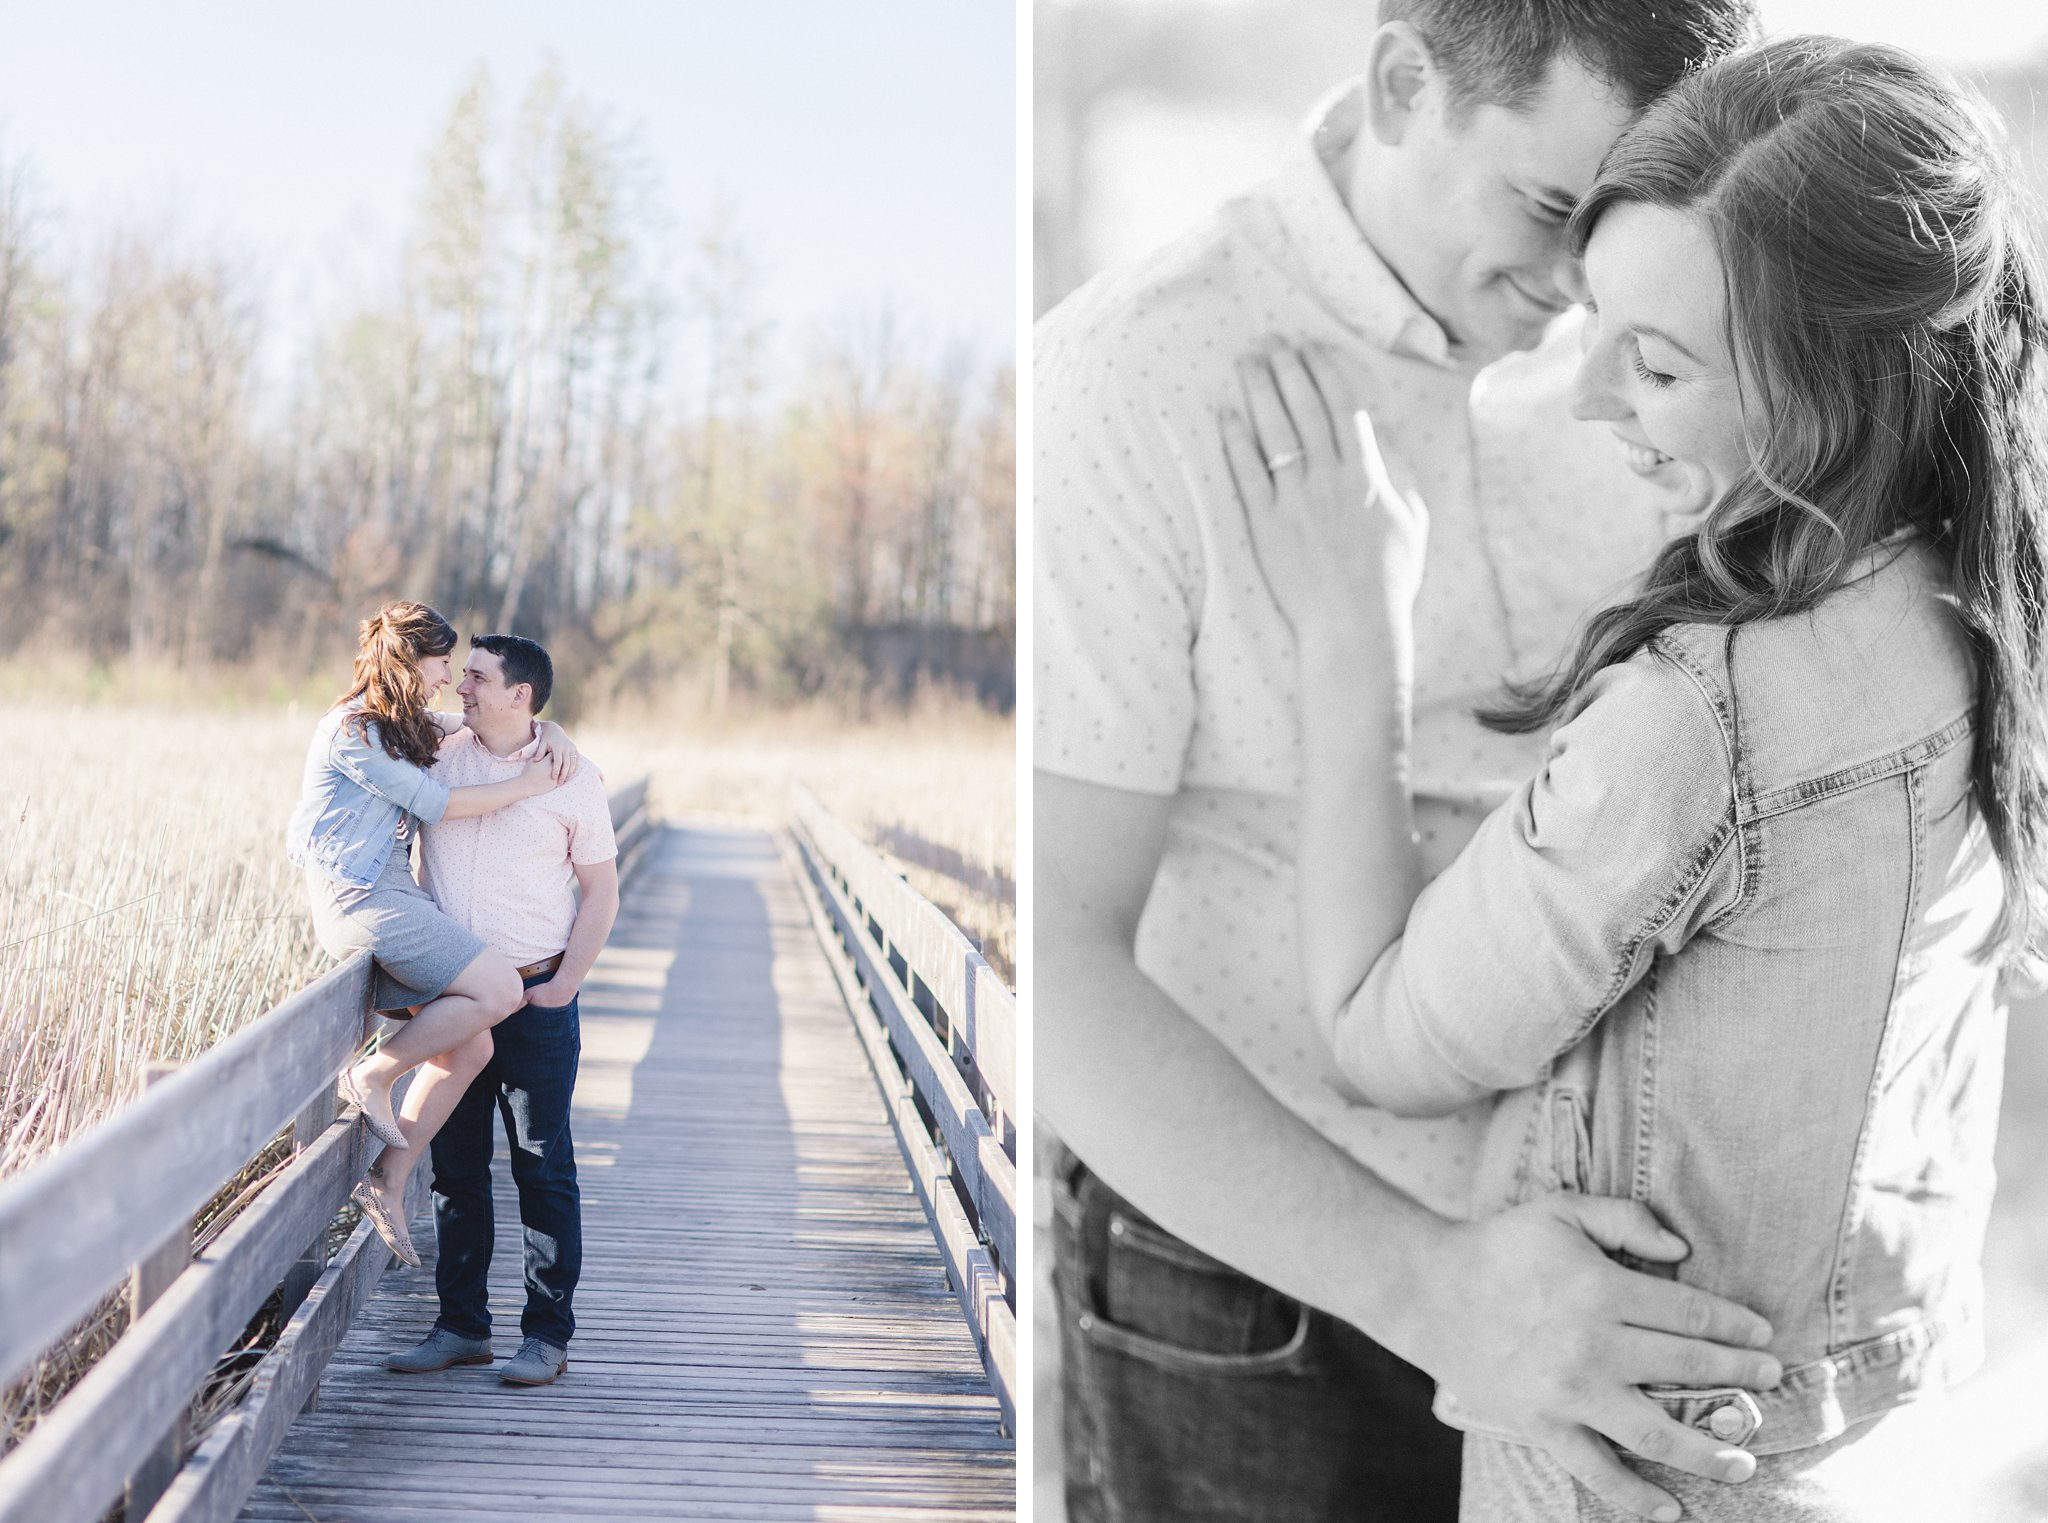 Outdoor engagement Ottawa Mer Bleue Boardwalk Engagement Photos Amy Pinder Photography